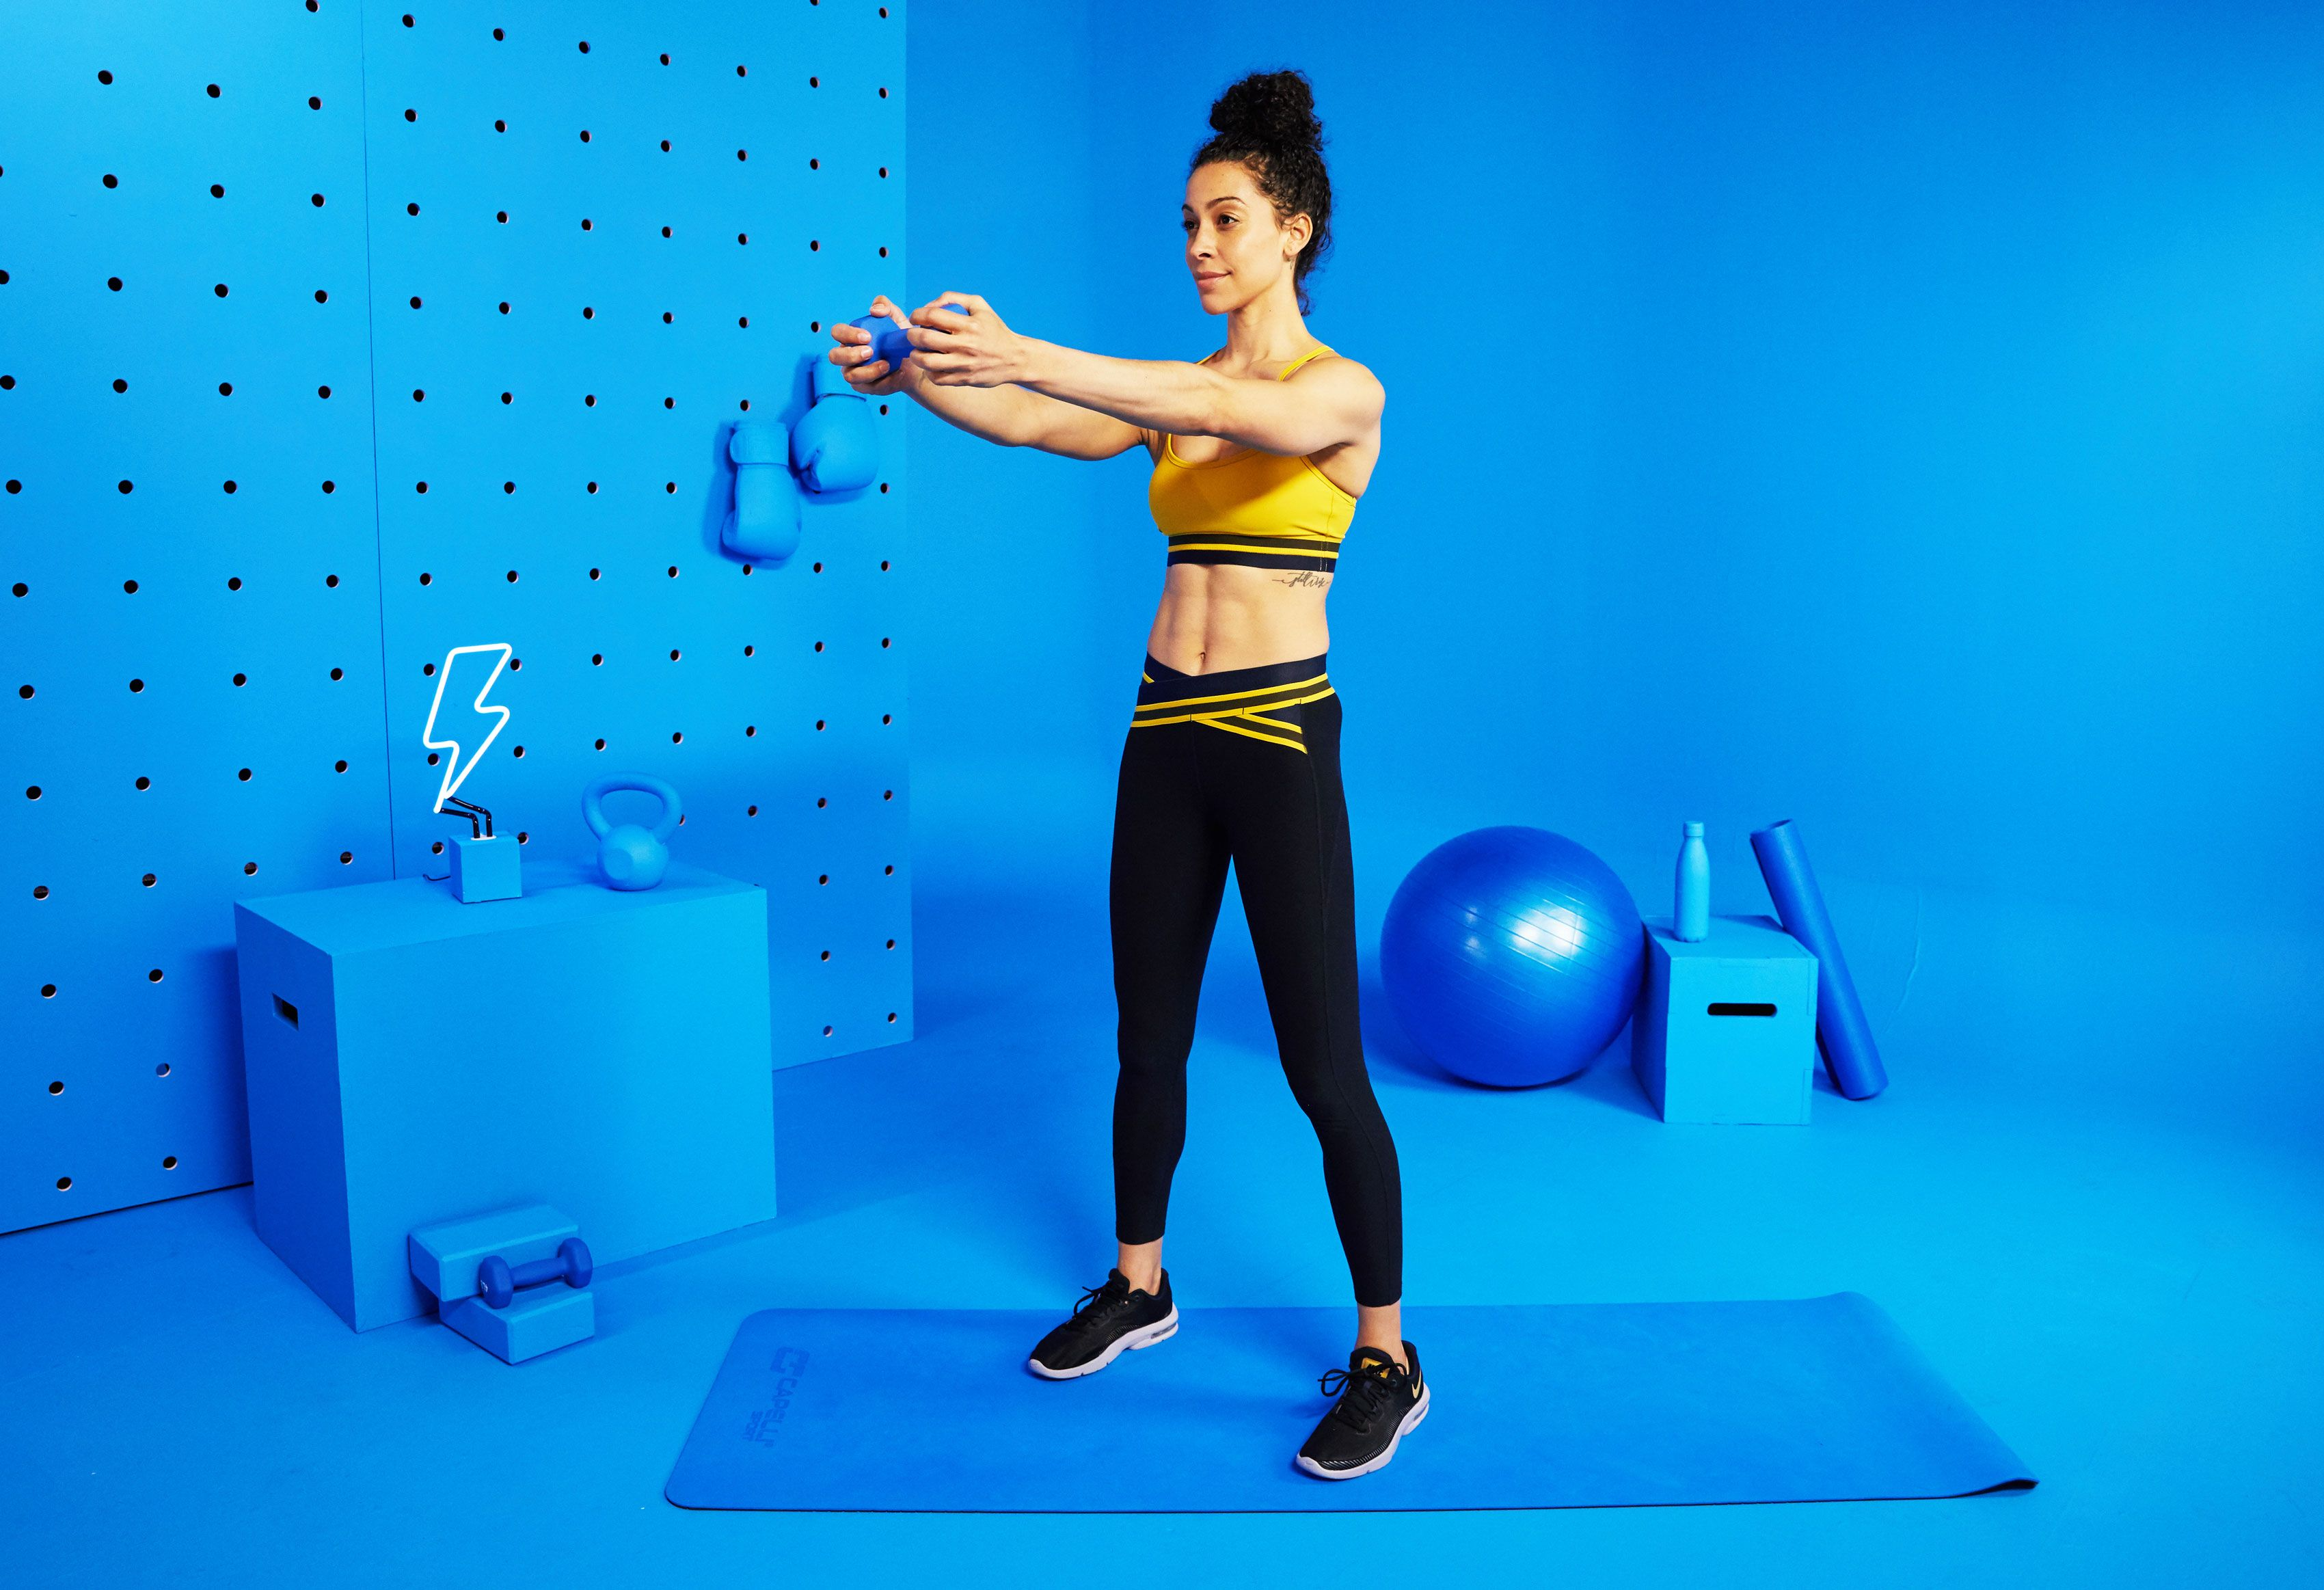 The 14-Minute Full-Body Workout You Can Do At Home